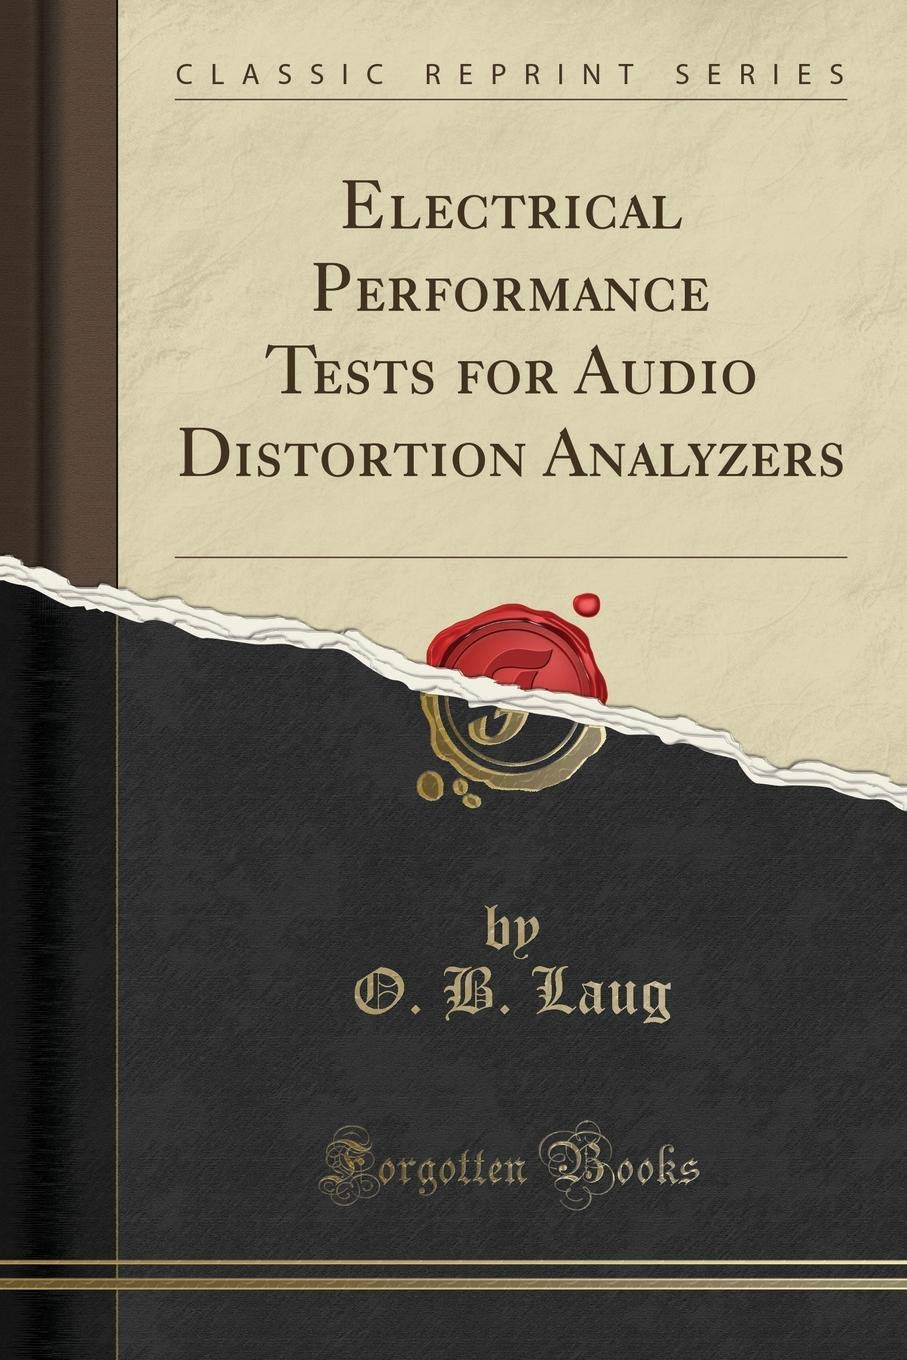 Electrical Performance Tests for Audio Distortion Analyzers